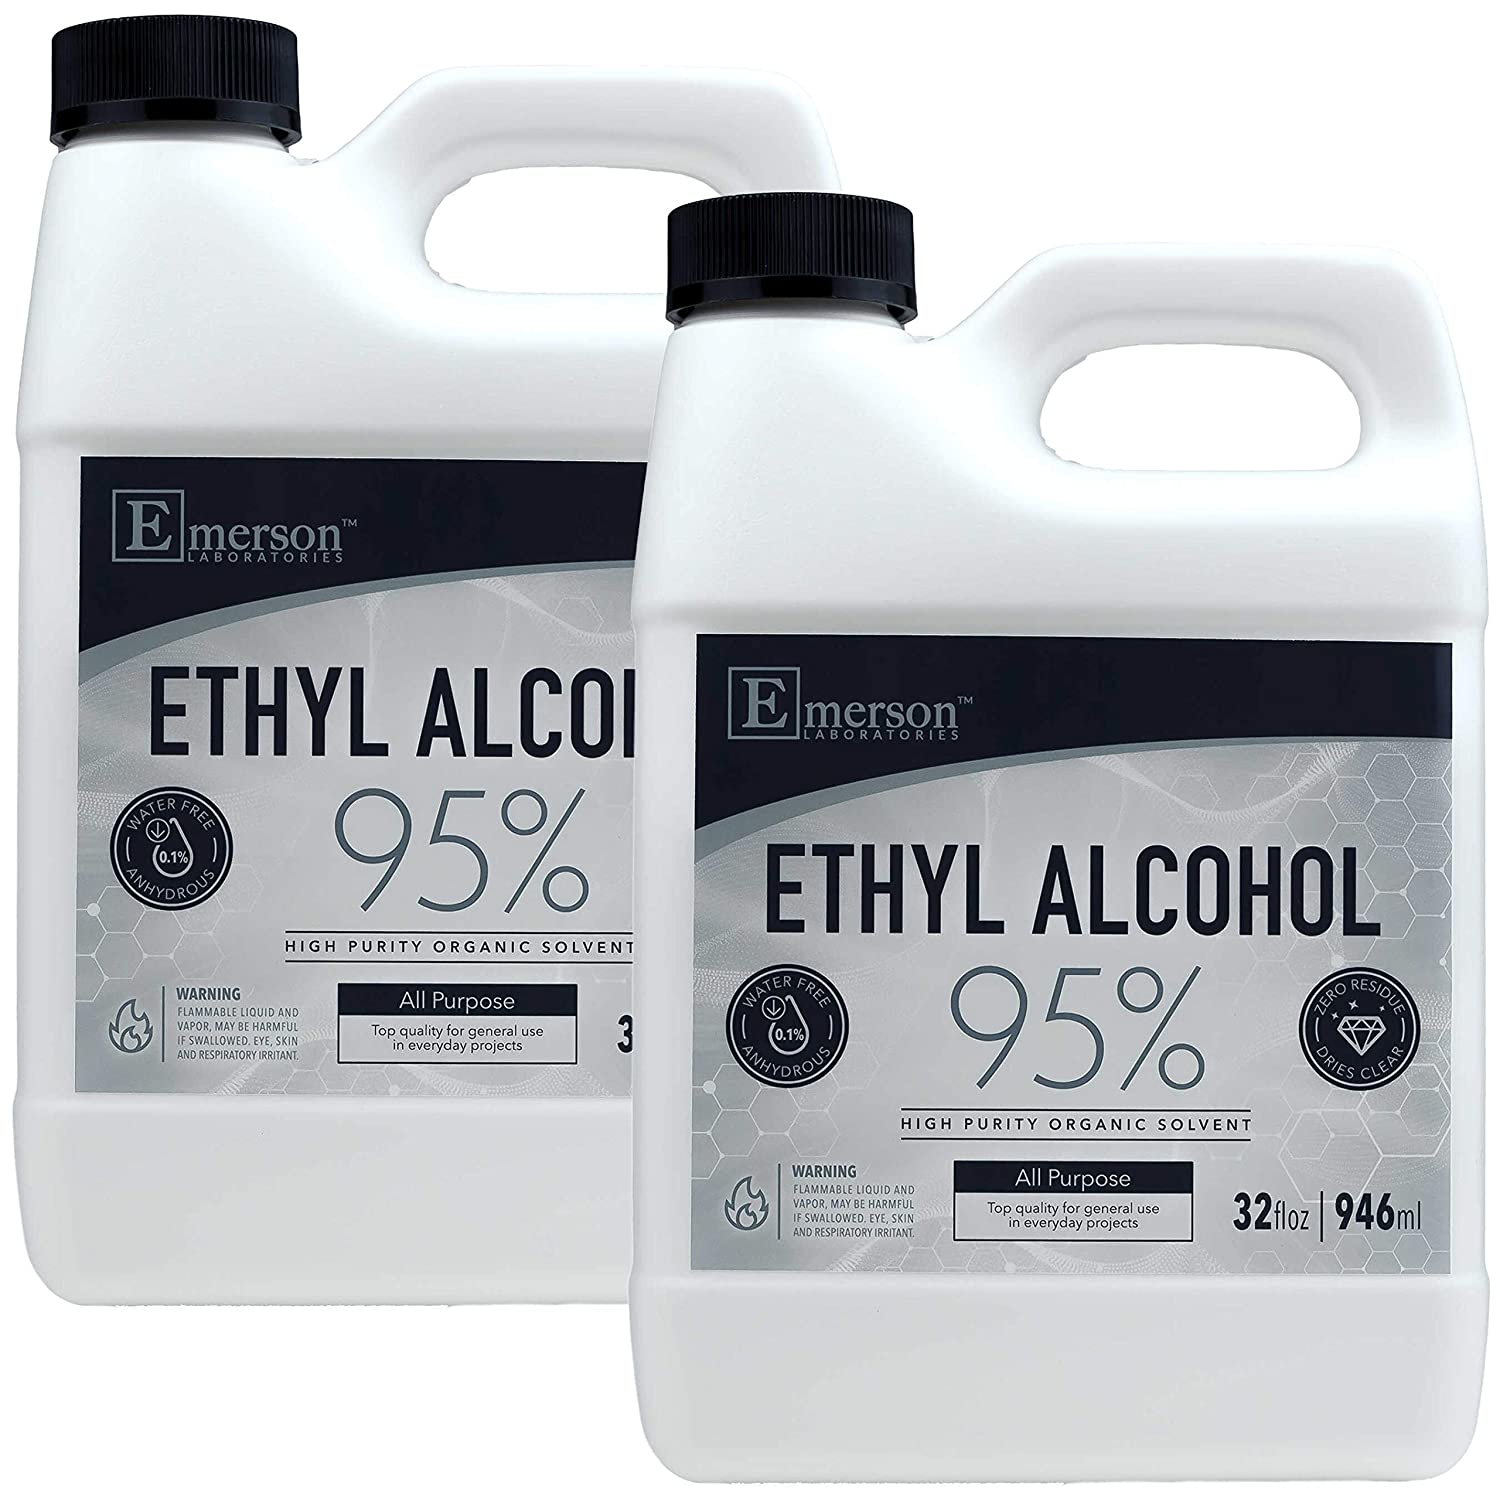 Emerson Labs 95% Ethyl Alcohol (2-32oz Bottles) - 1/2 Gallon Pack of High-Purity Denatured Alcohol Solvent for Home & Professional Use (CDA 12-A 200-Proof Ethanol with n-Heptane) - 64 Ounce